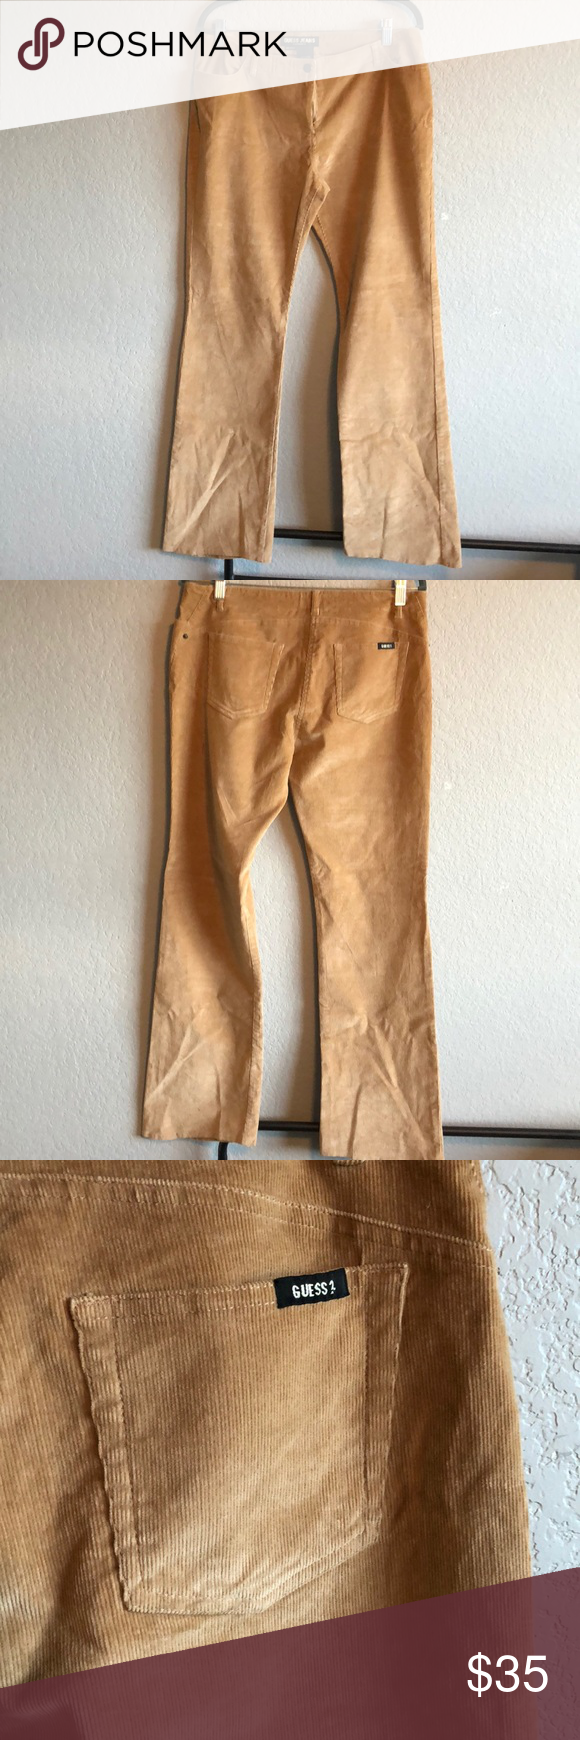 23314c194d Guess Jeans camel color corduroy pants Very little stretch bootcut corduroy  pants never worn. Retro vintage from early 2000s pants. No tags.